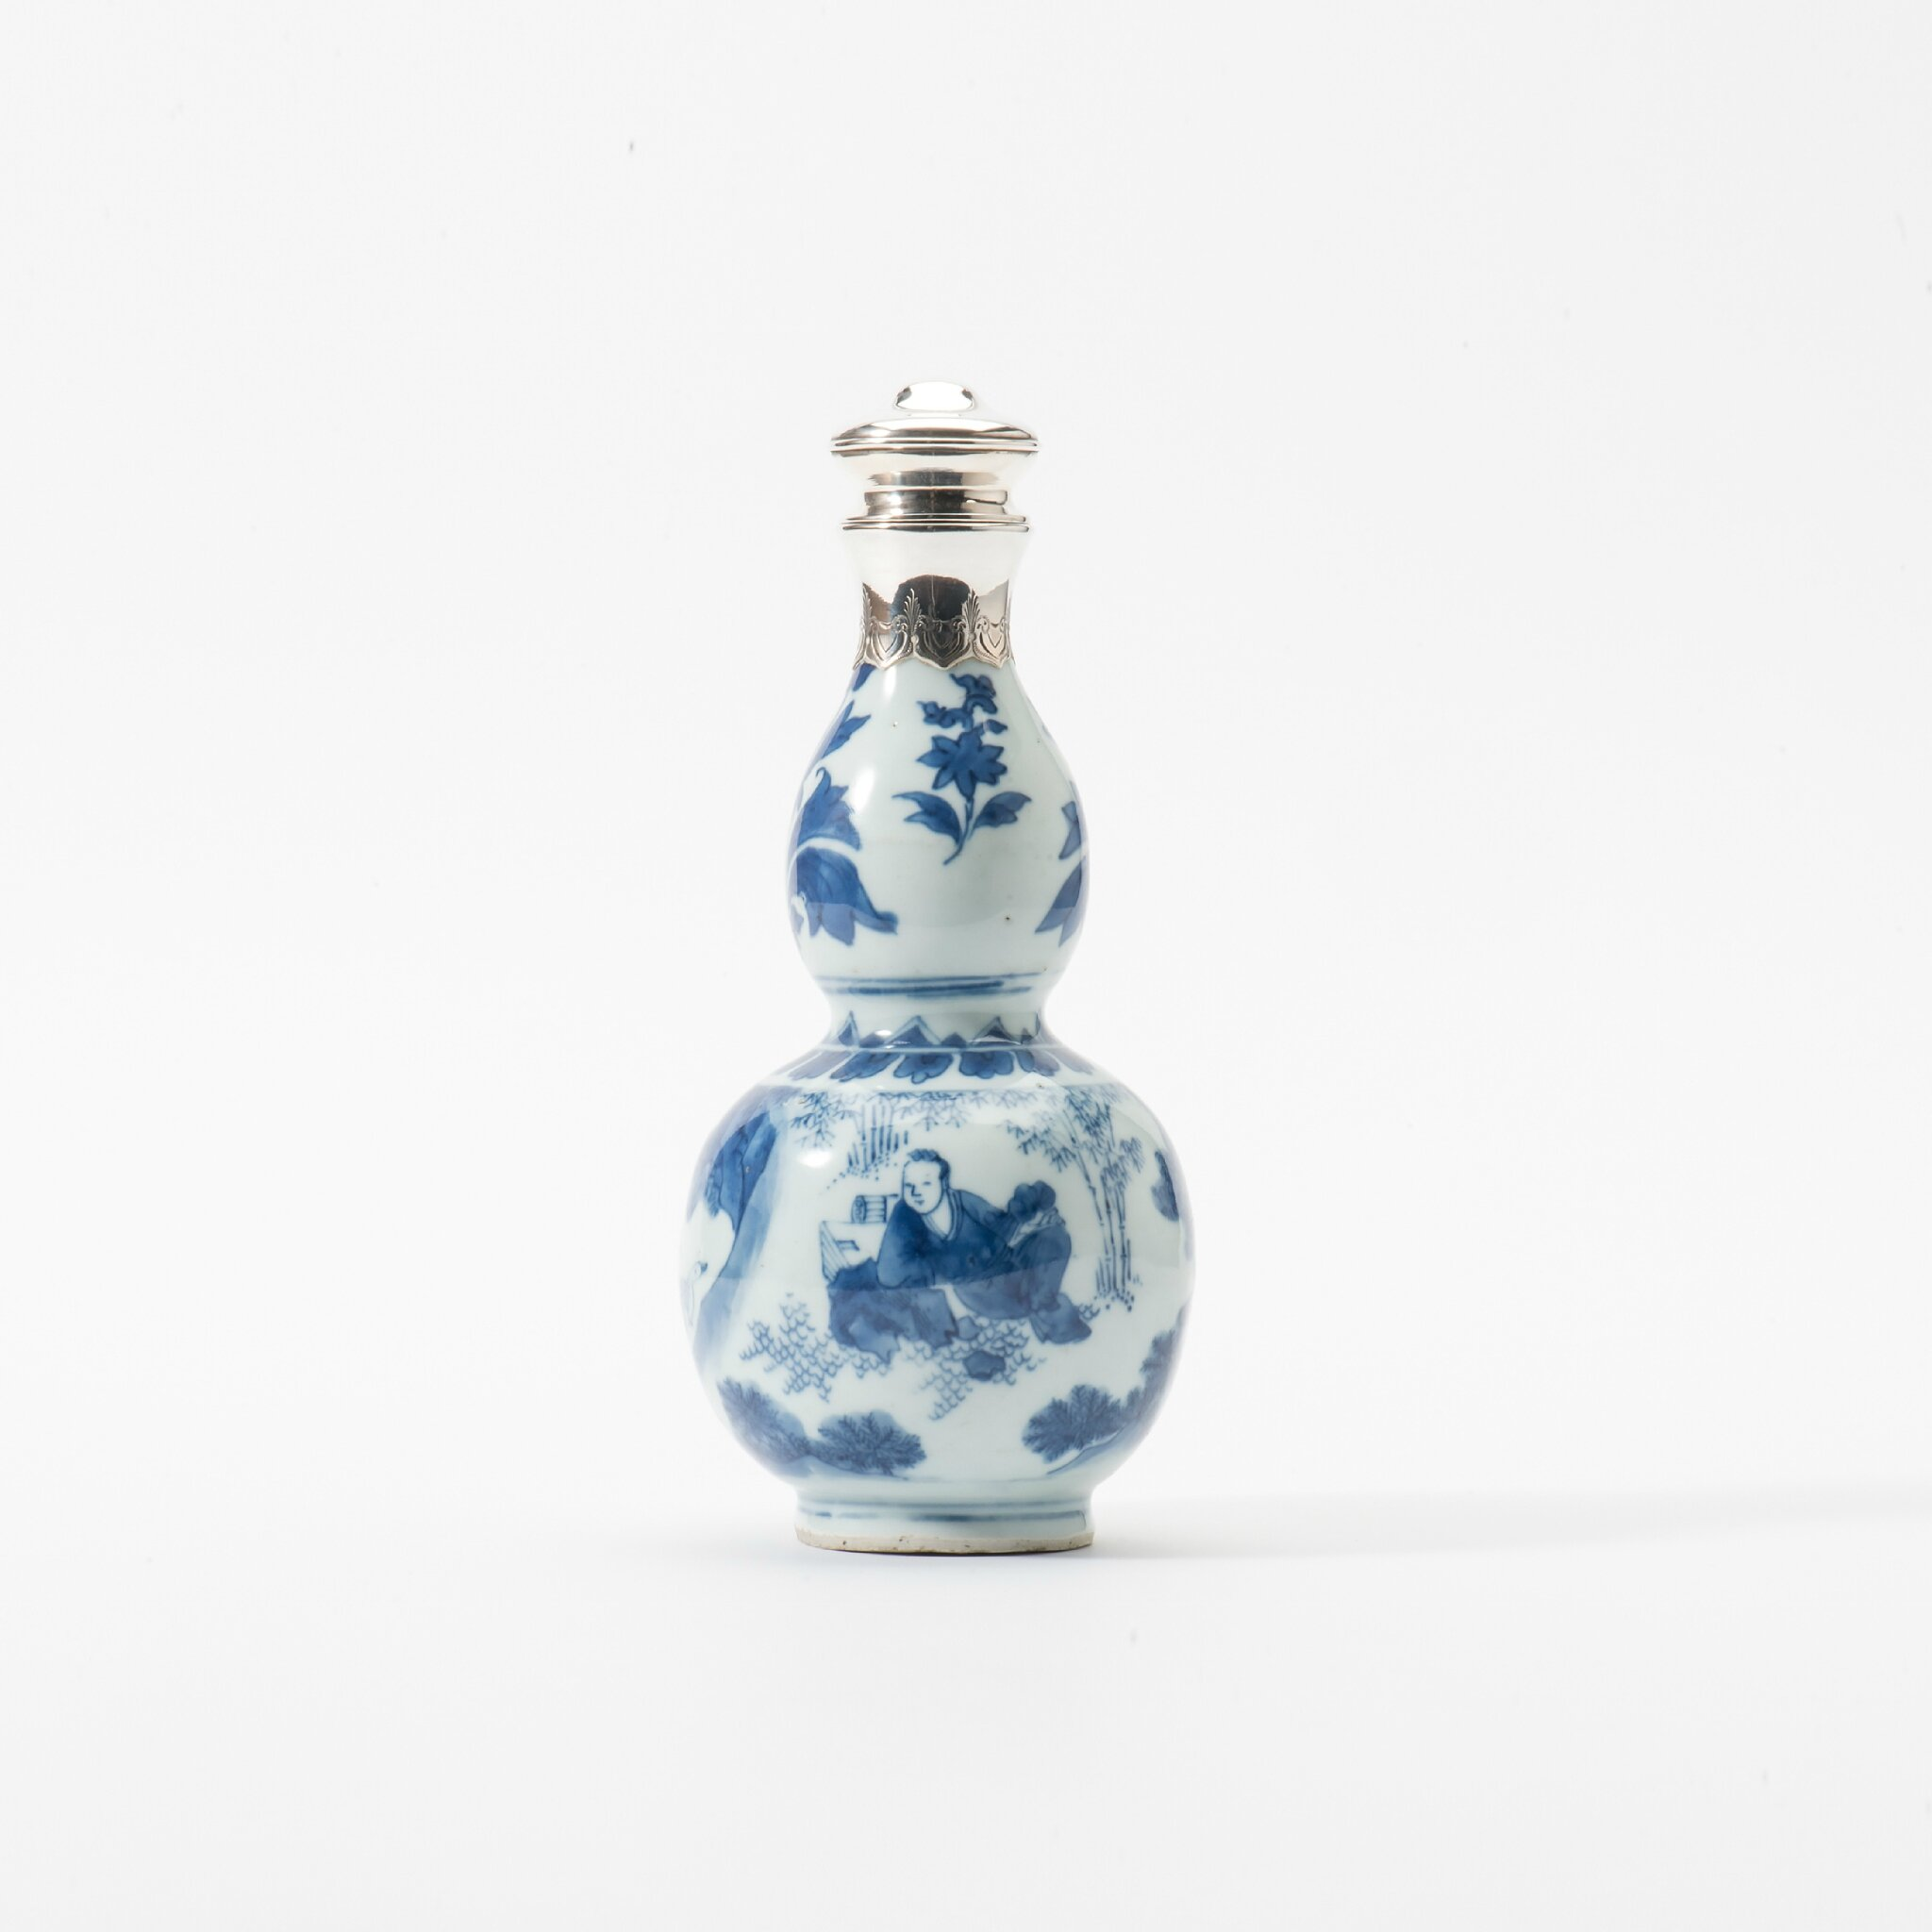 A gourd-shaped blue and white vase, Chongzhen period (1627-1644)